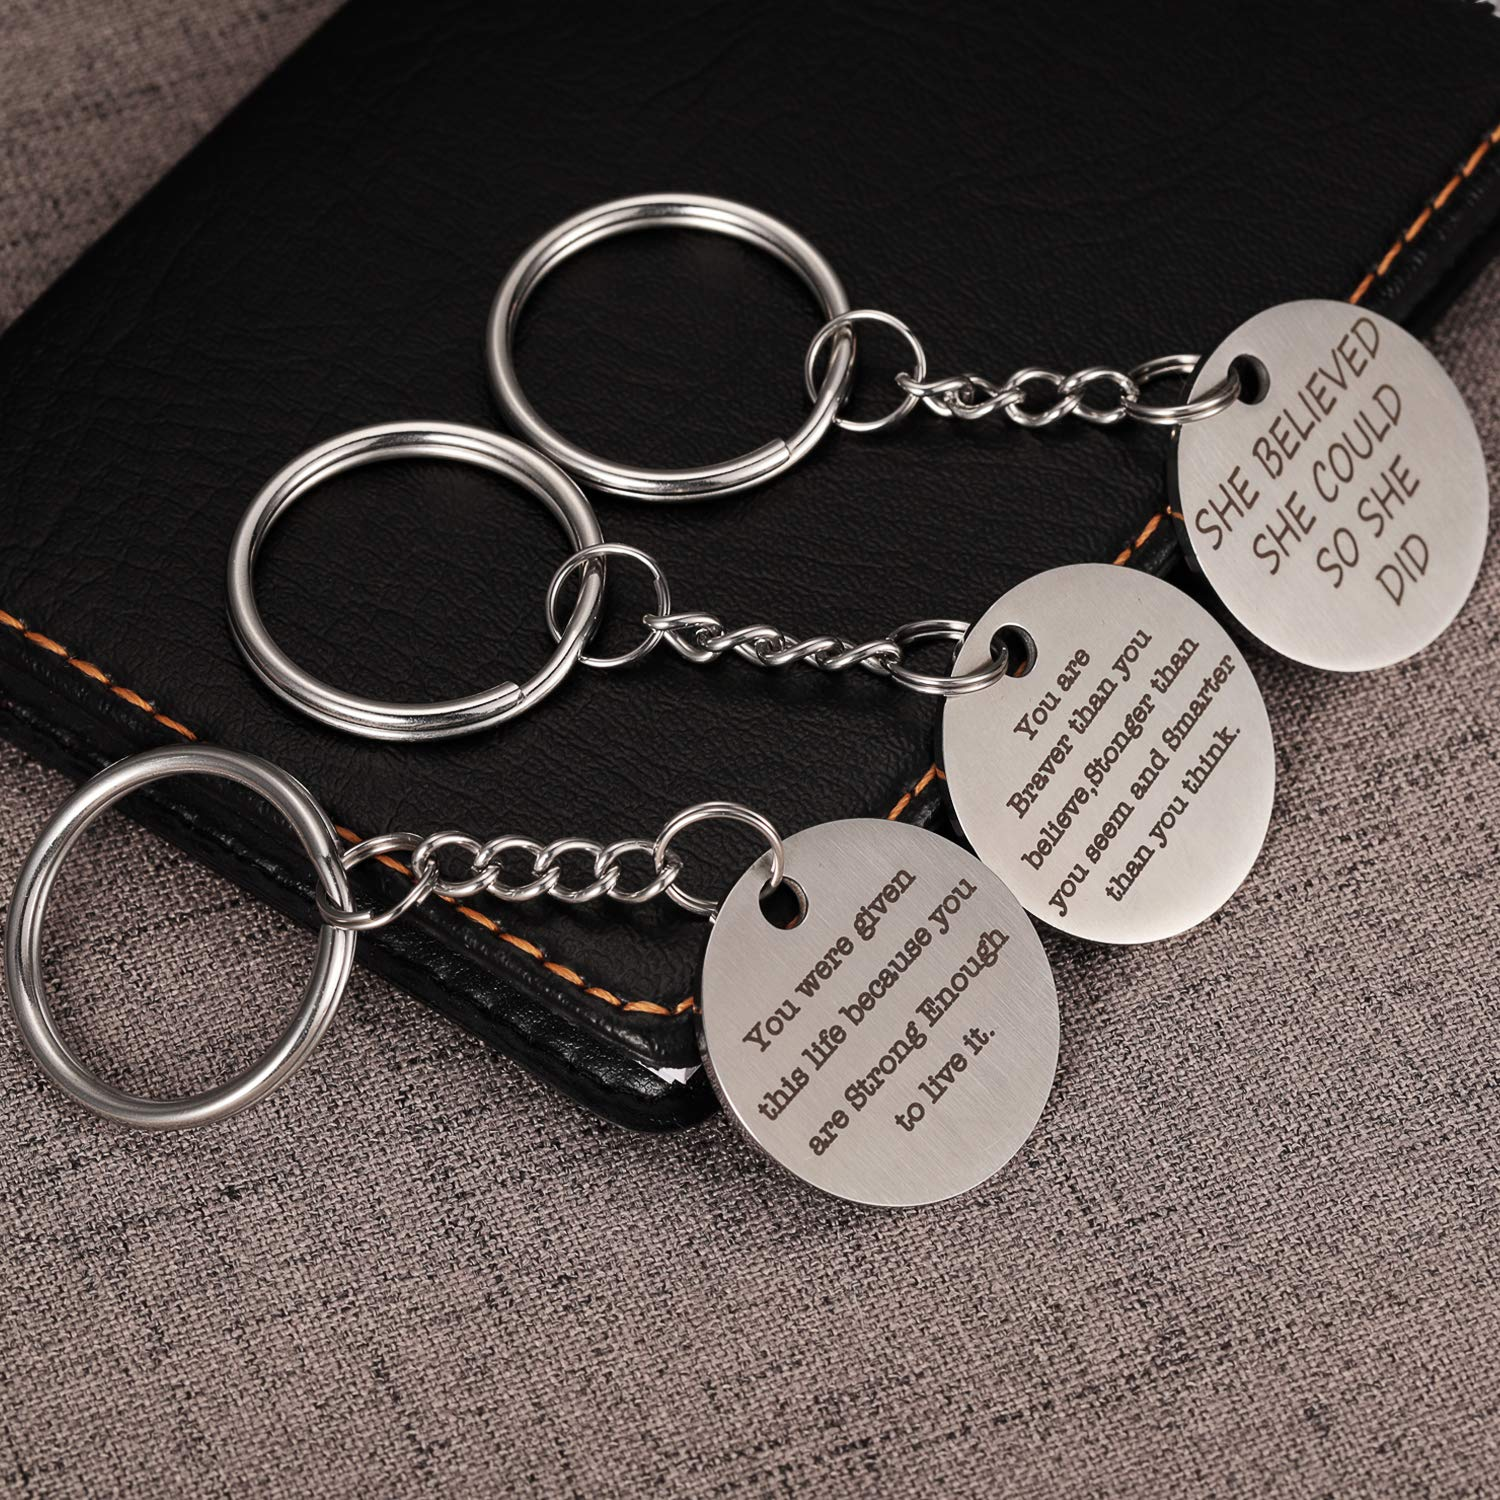 She believe she could You are given this life because stronger you seem and smarter than you think Motivational Inspirational Gifts For Women Keychain You are braver than you believe so she did